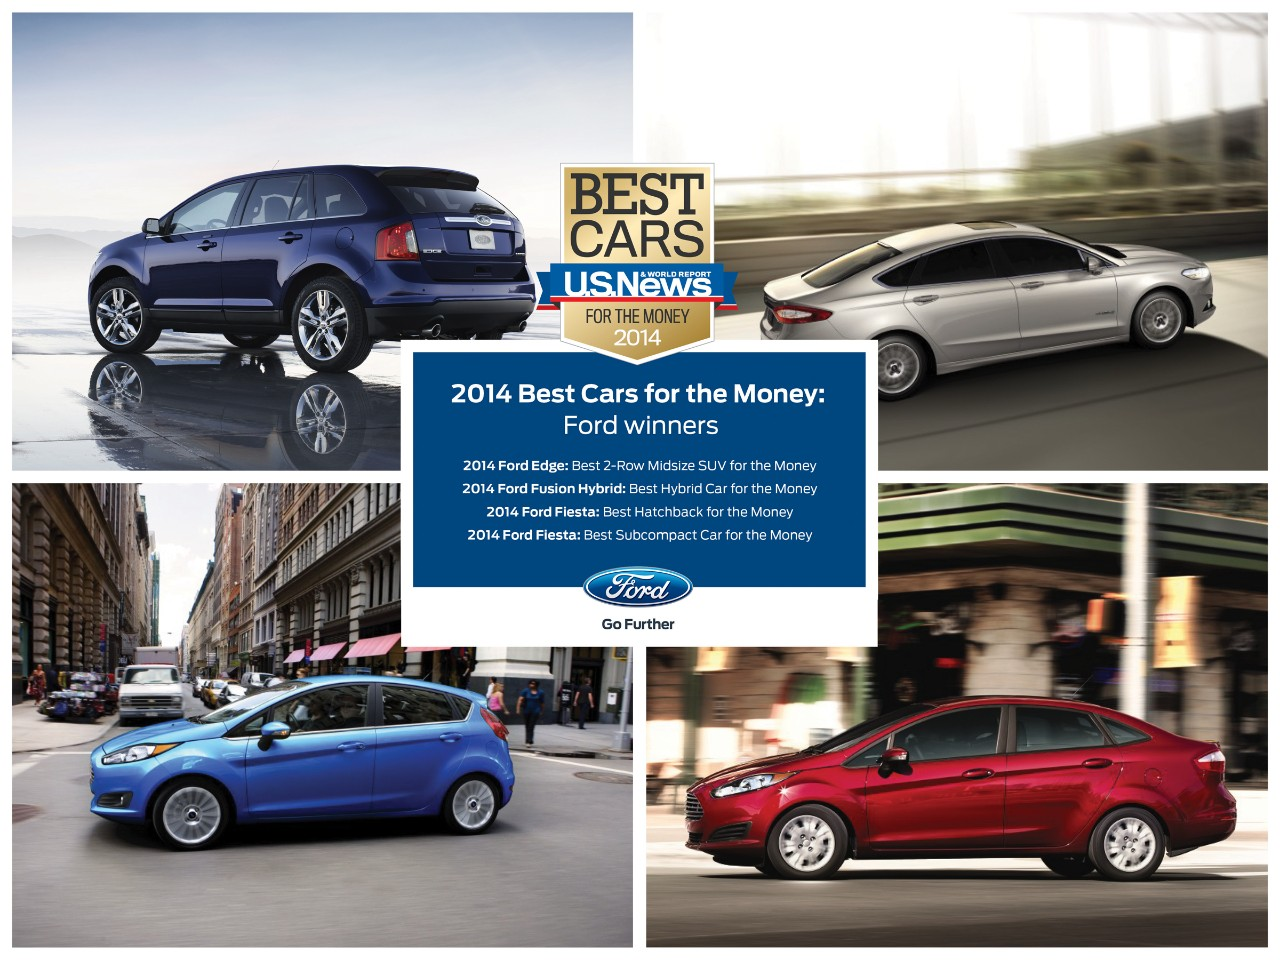 Ford was the Most-Awarded Brand in U.S. News & World Report